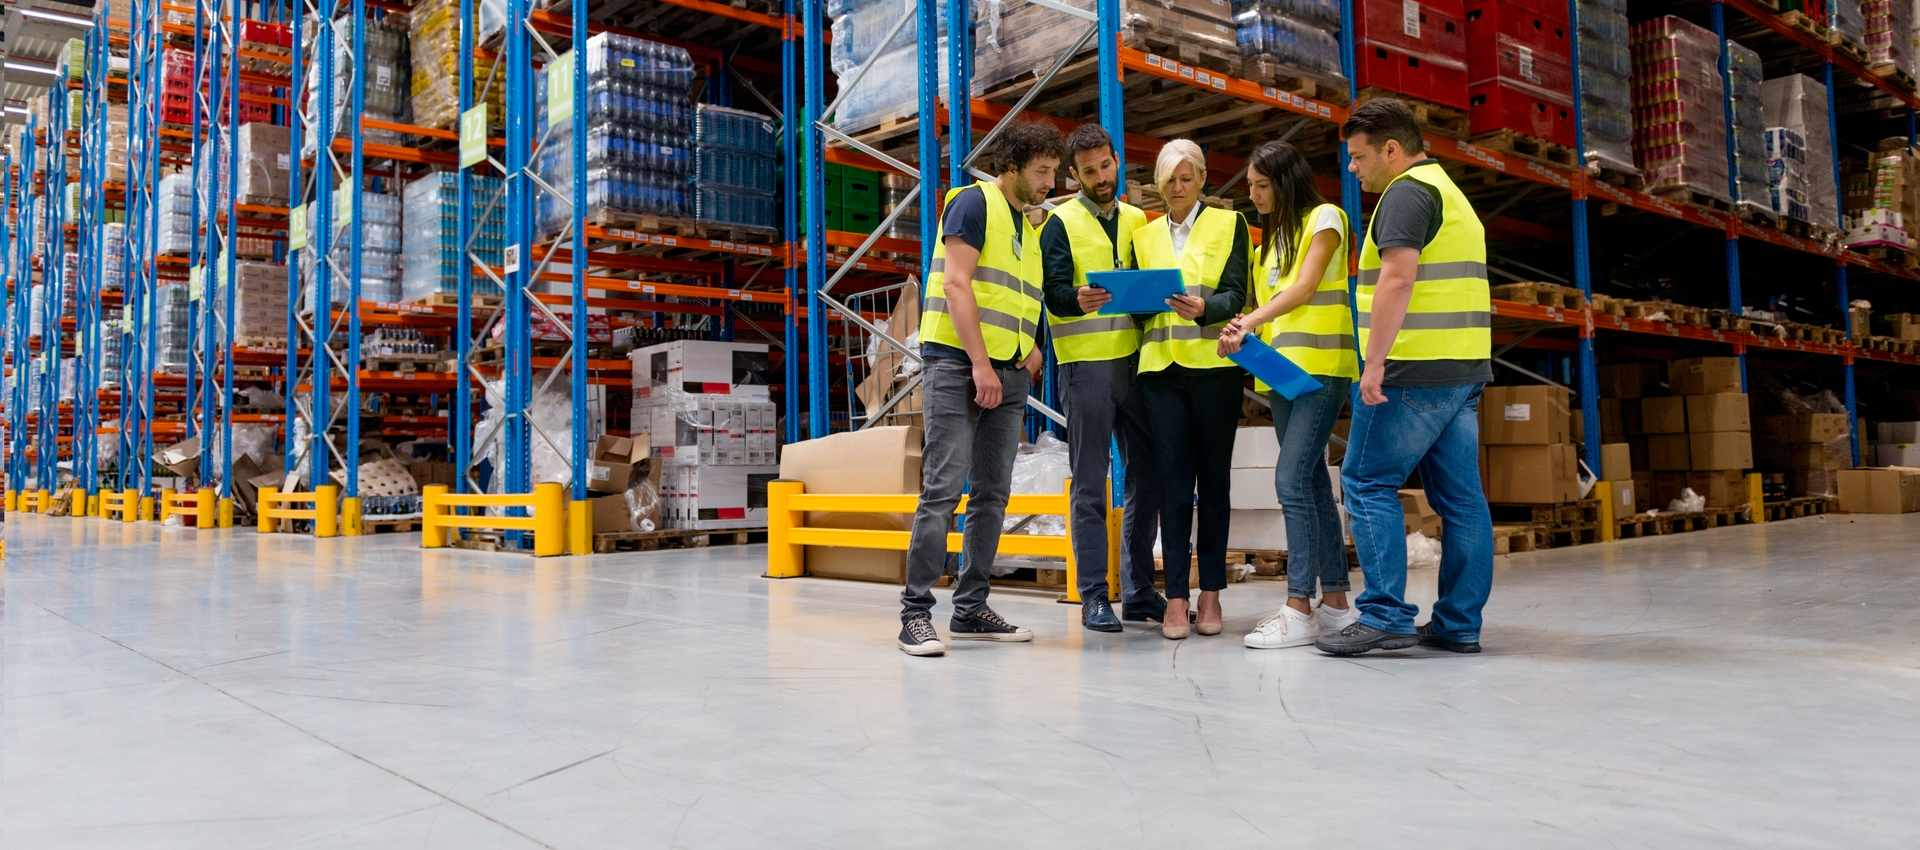 4 Strategies to Attract and Retain Warehouse Workers